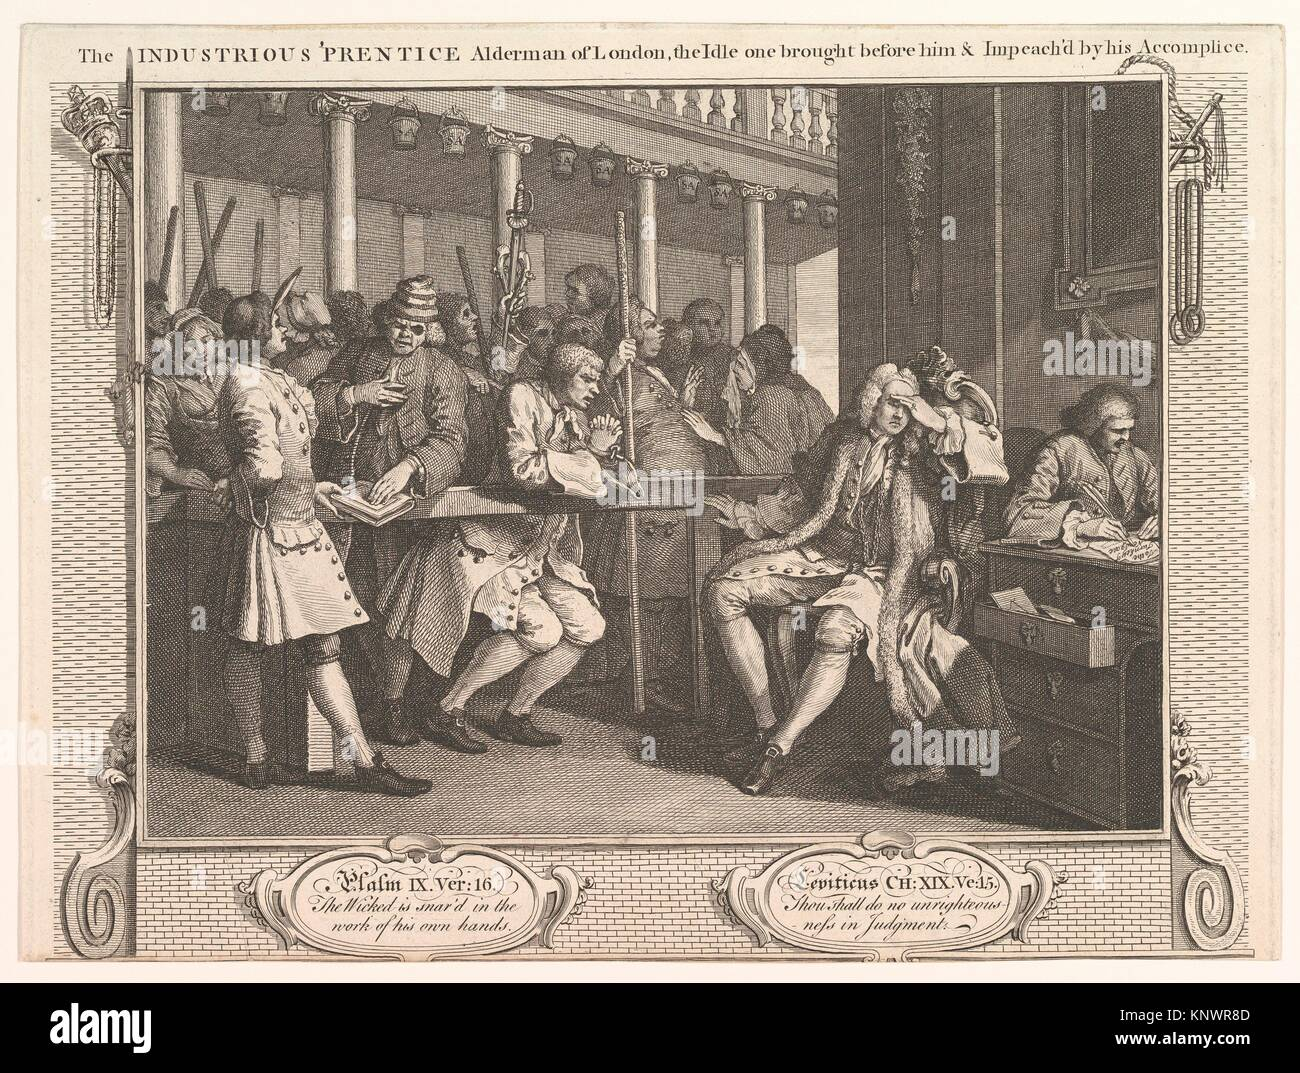 The Industrious 'Prentice Alderman of London, The Idle One Brought Before Him and Impeached by his Accomplices - Stock Image